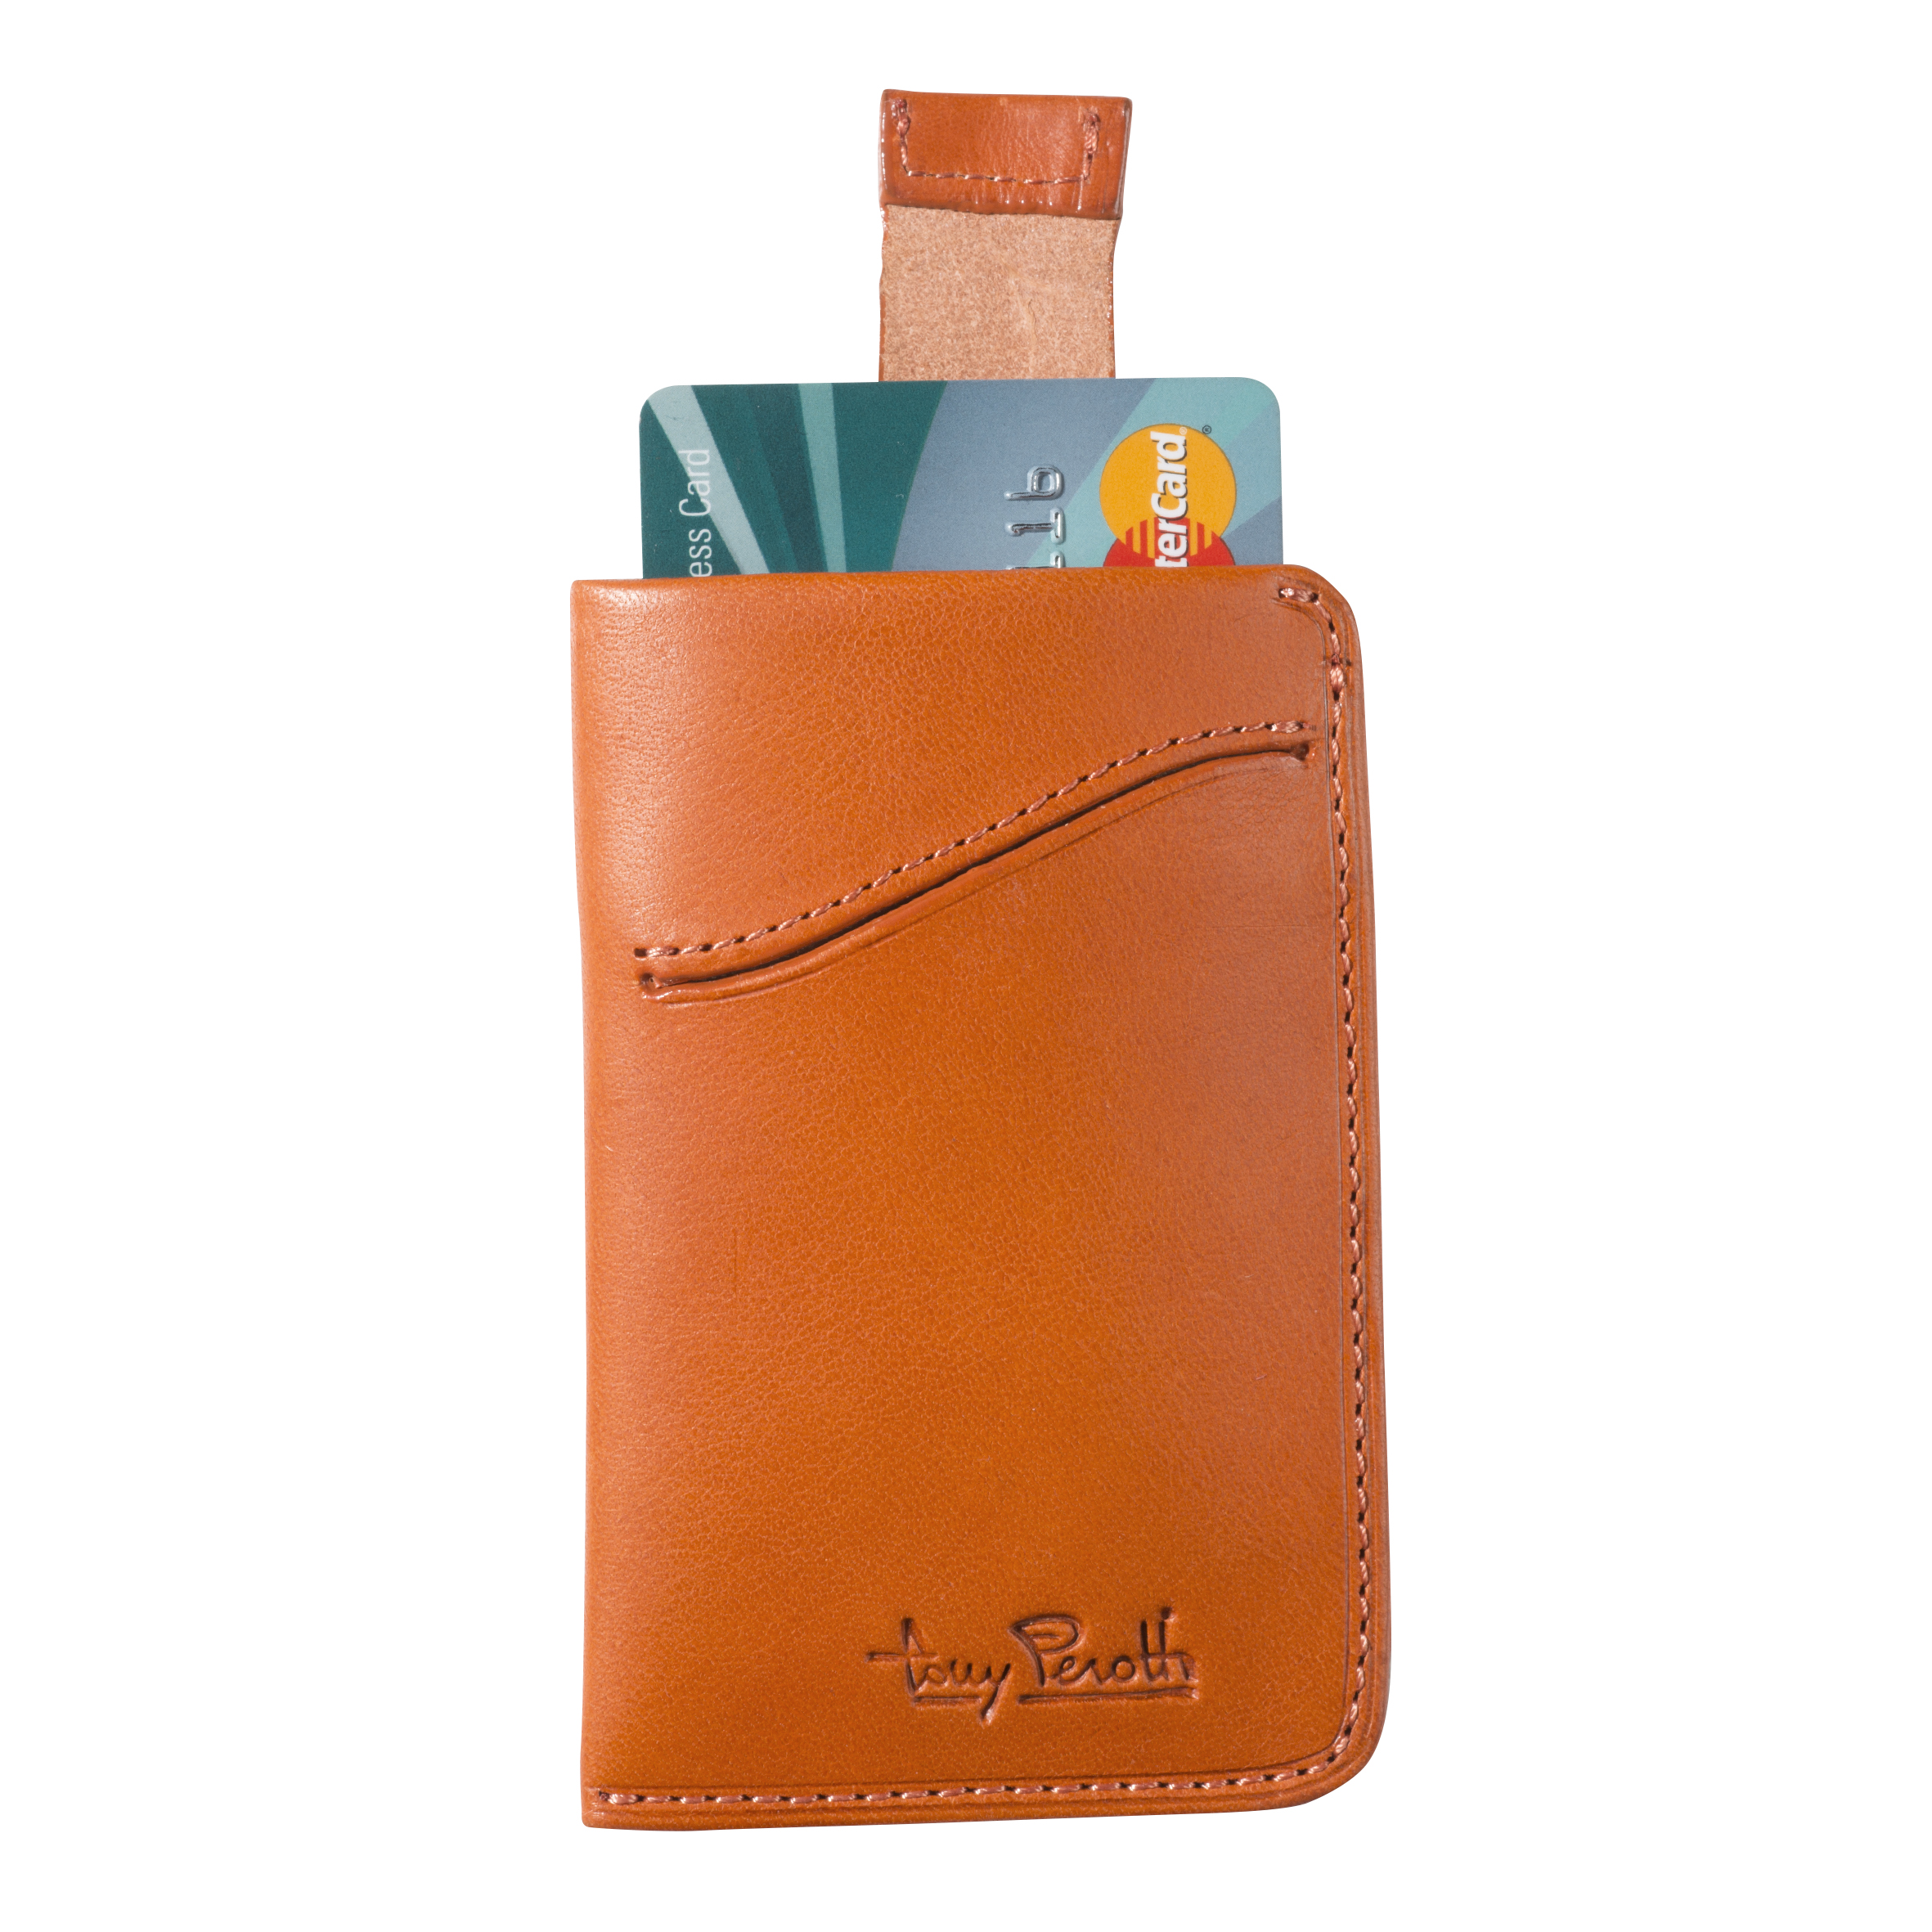 Tony Perotti Creditcard Wallet with Pull up System Orange